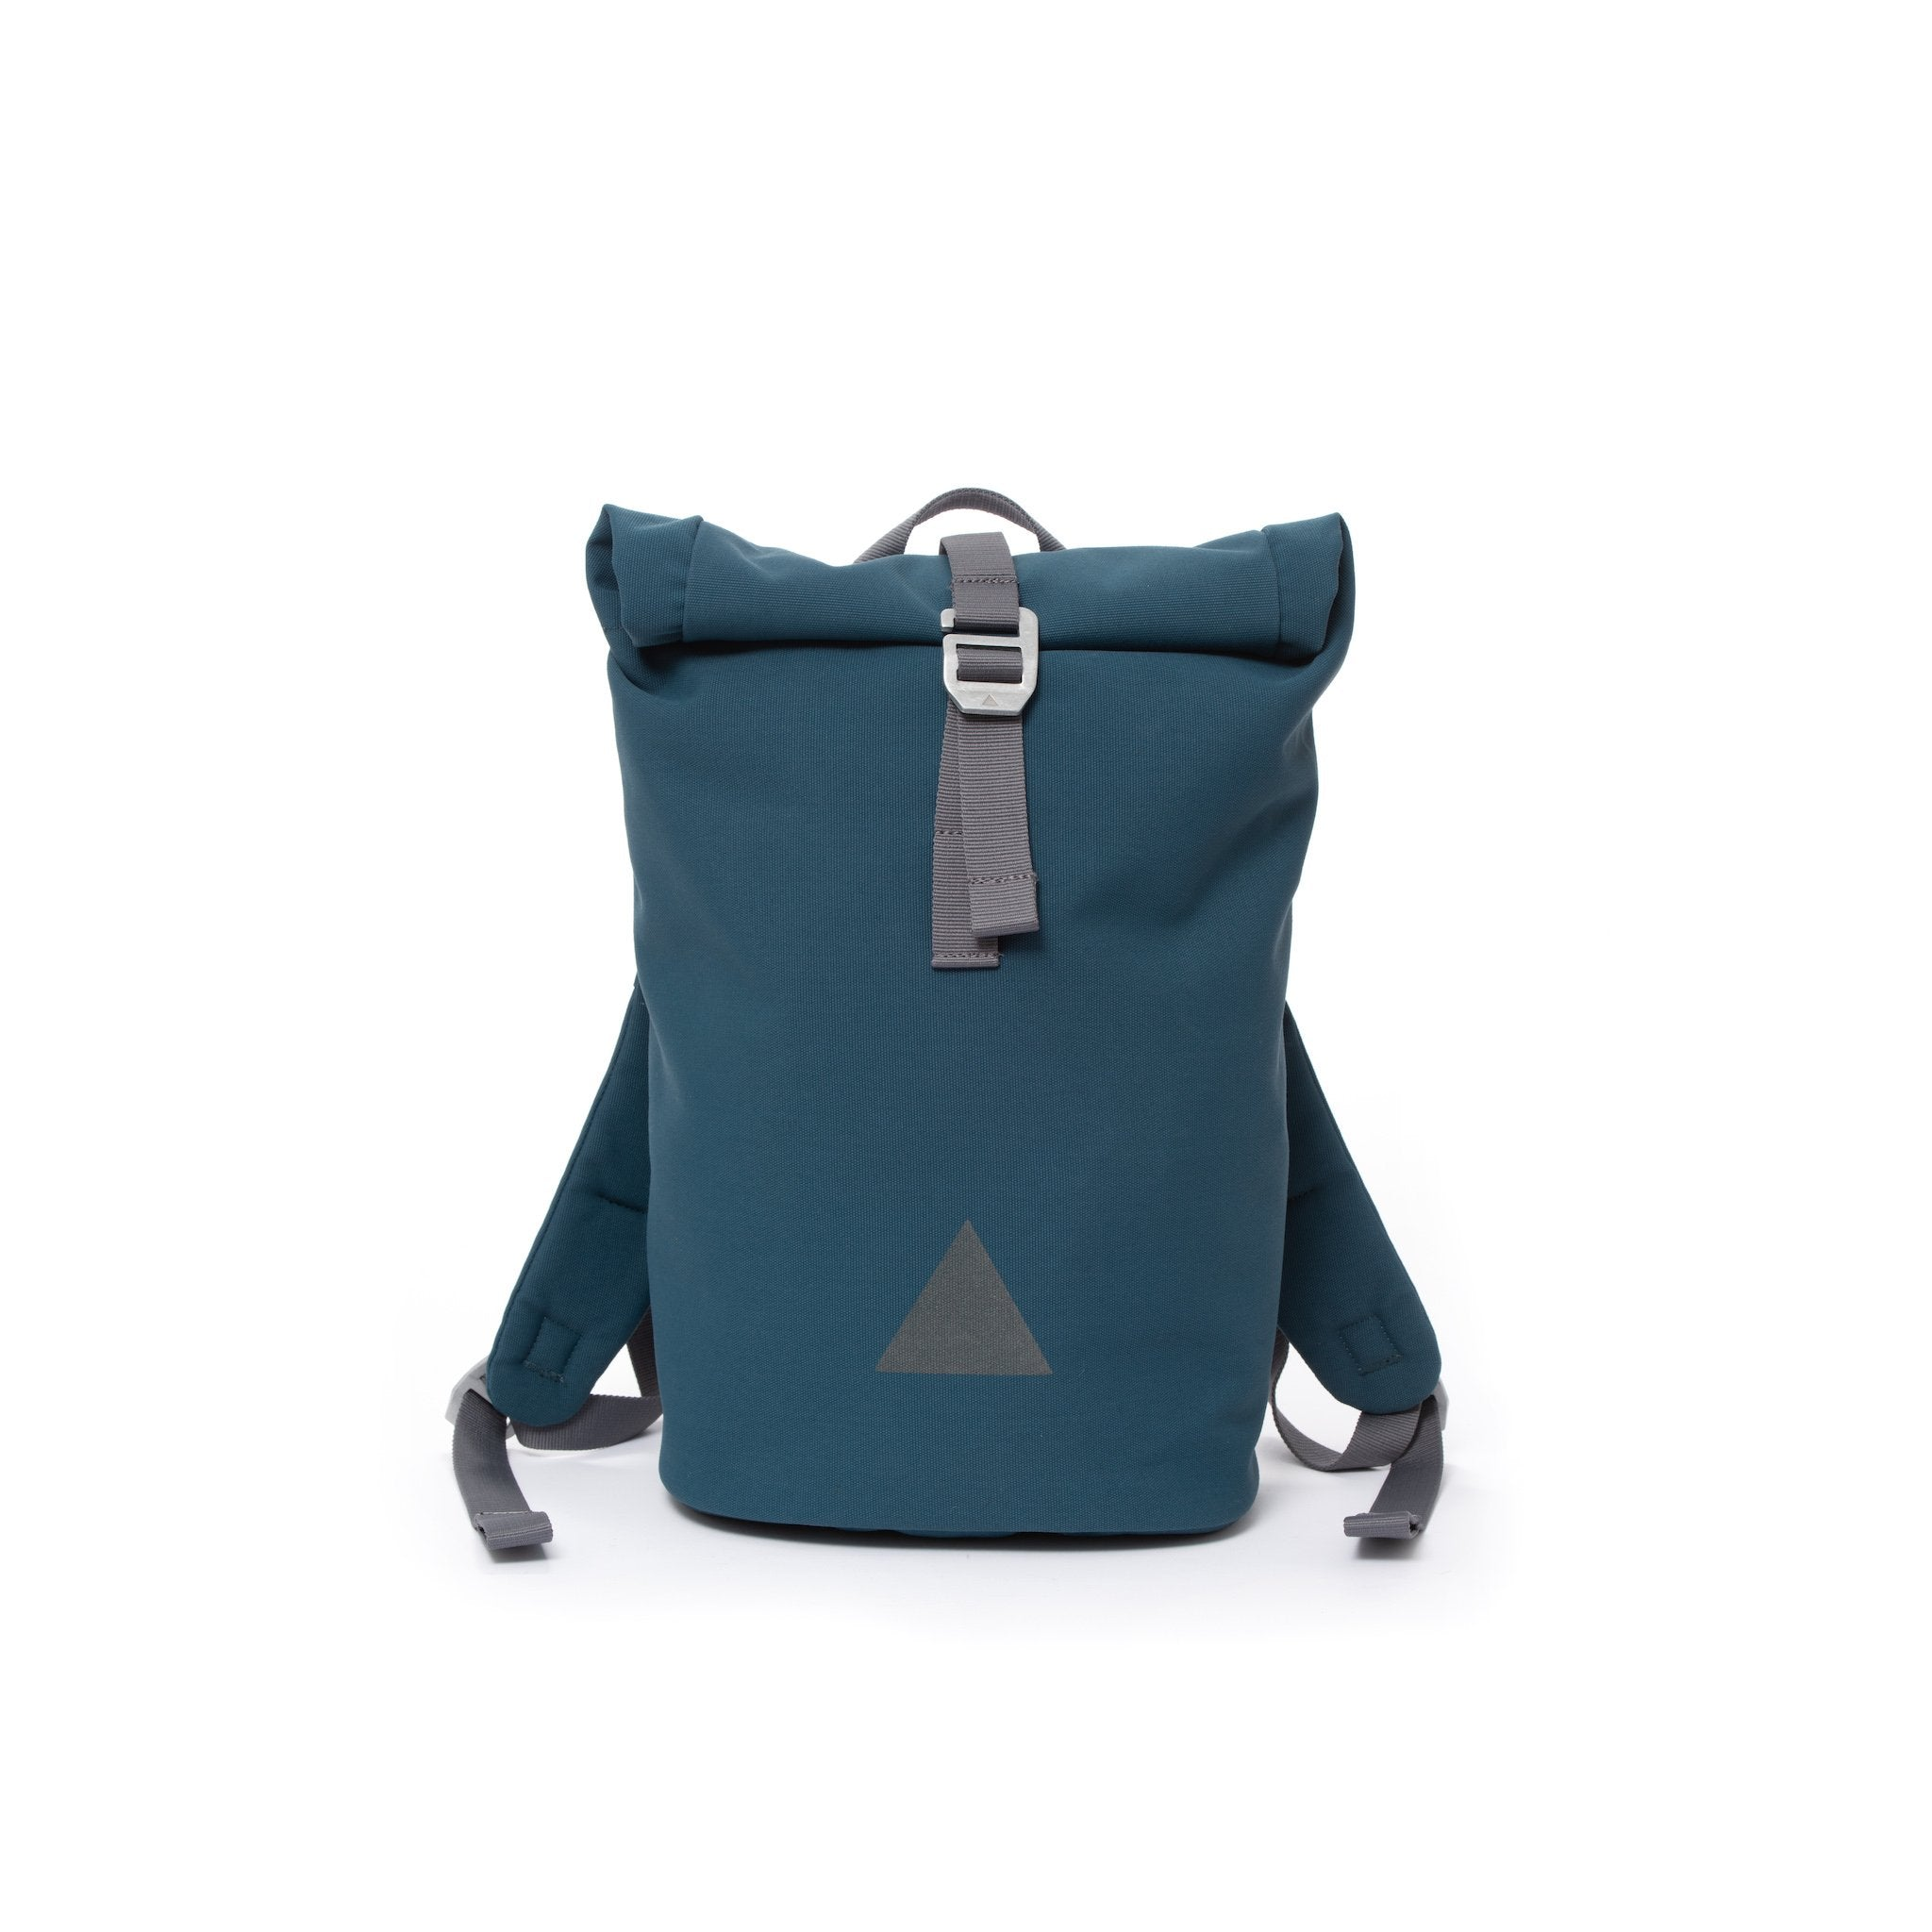 Blue recycled canvas women's rolltop backpack with triangle logo.